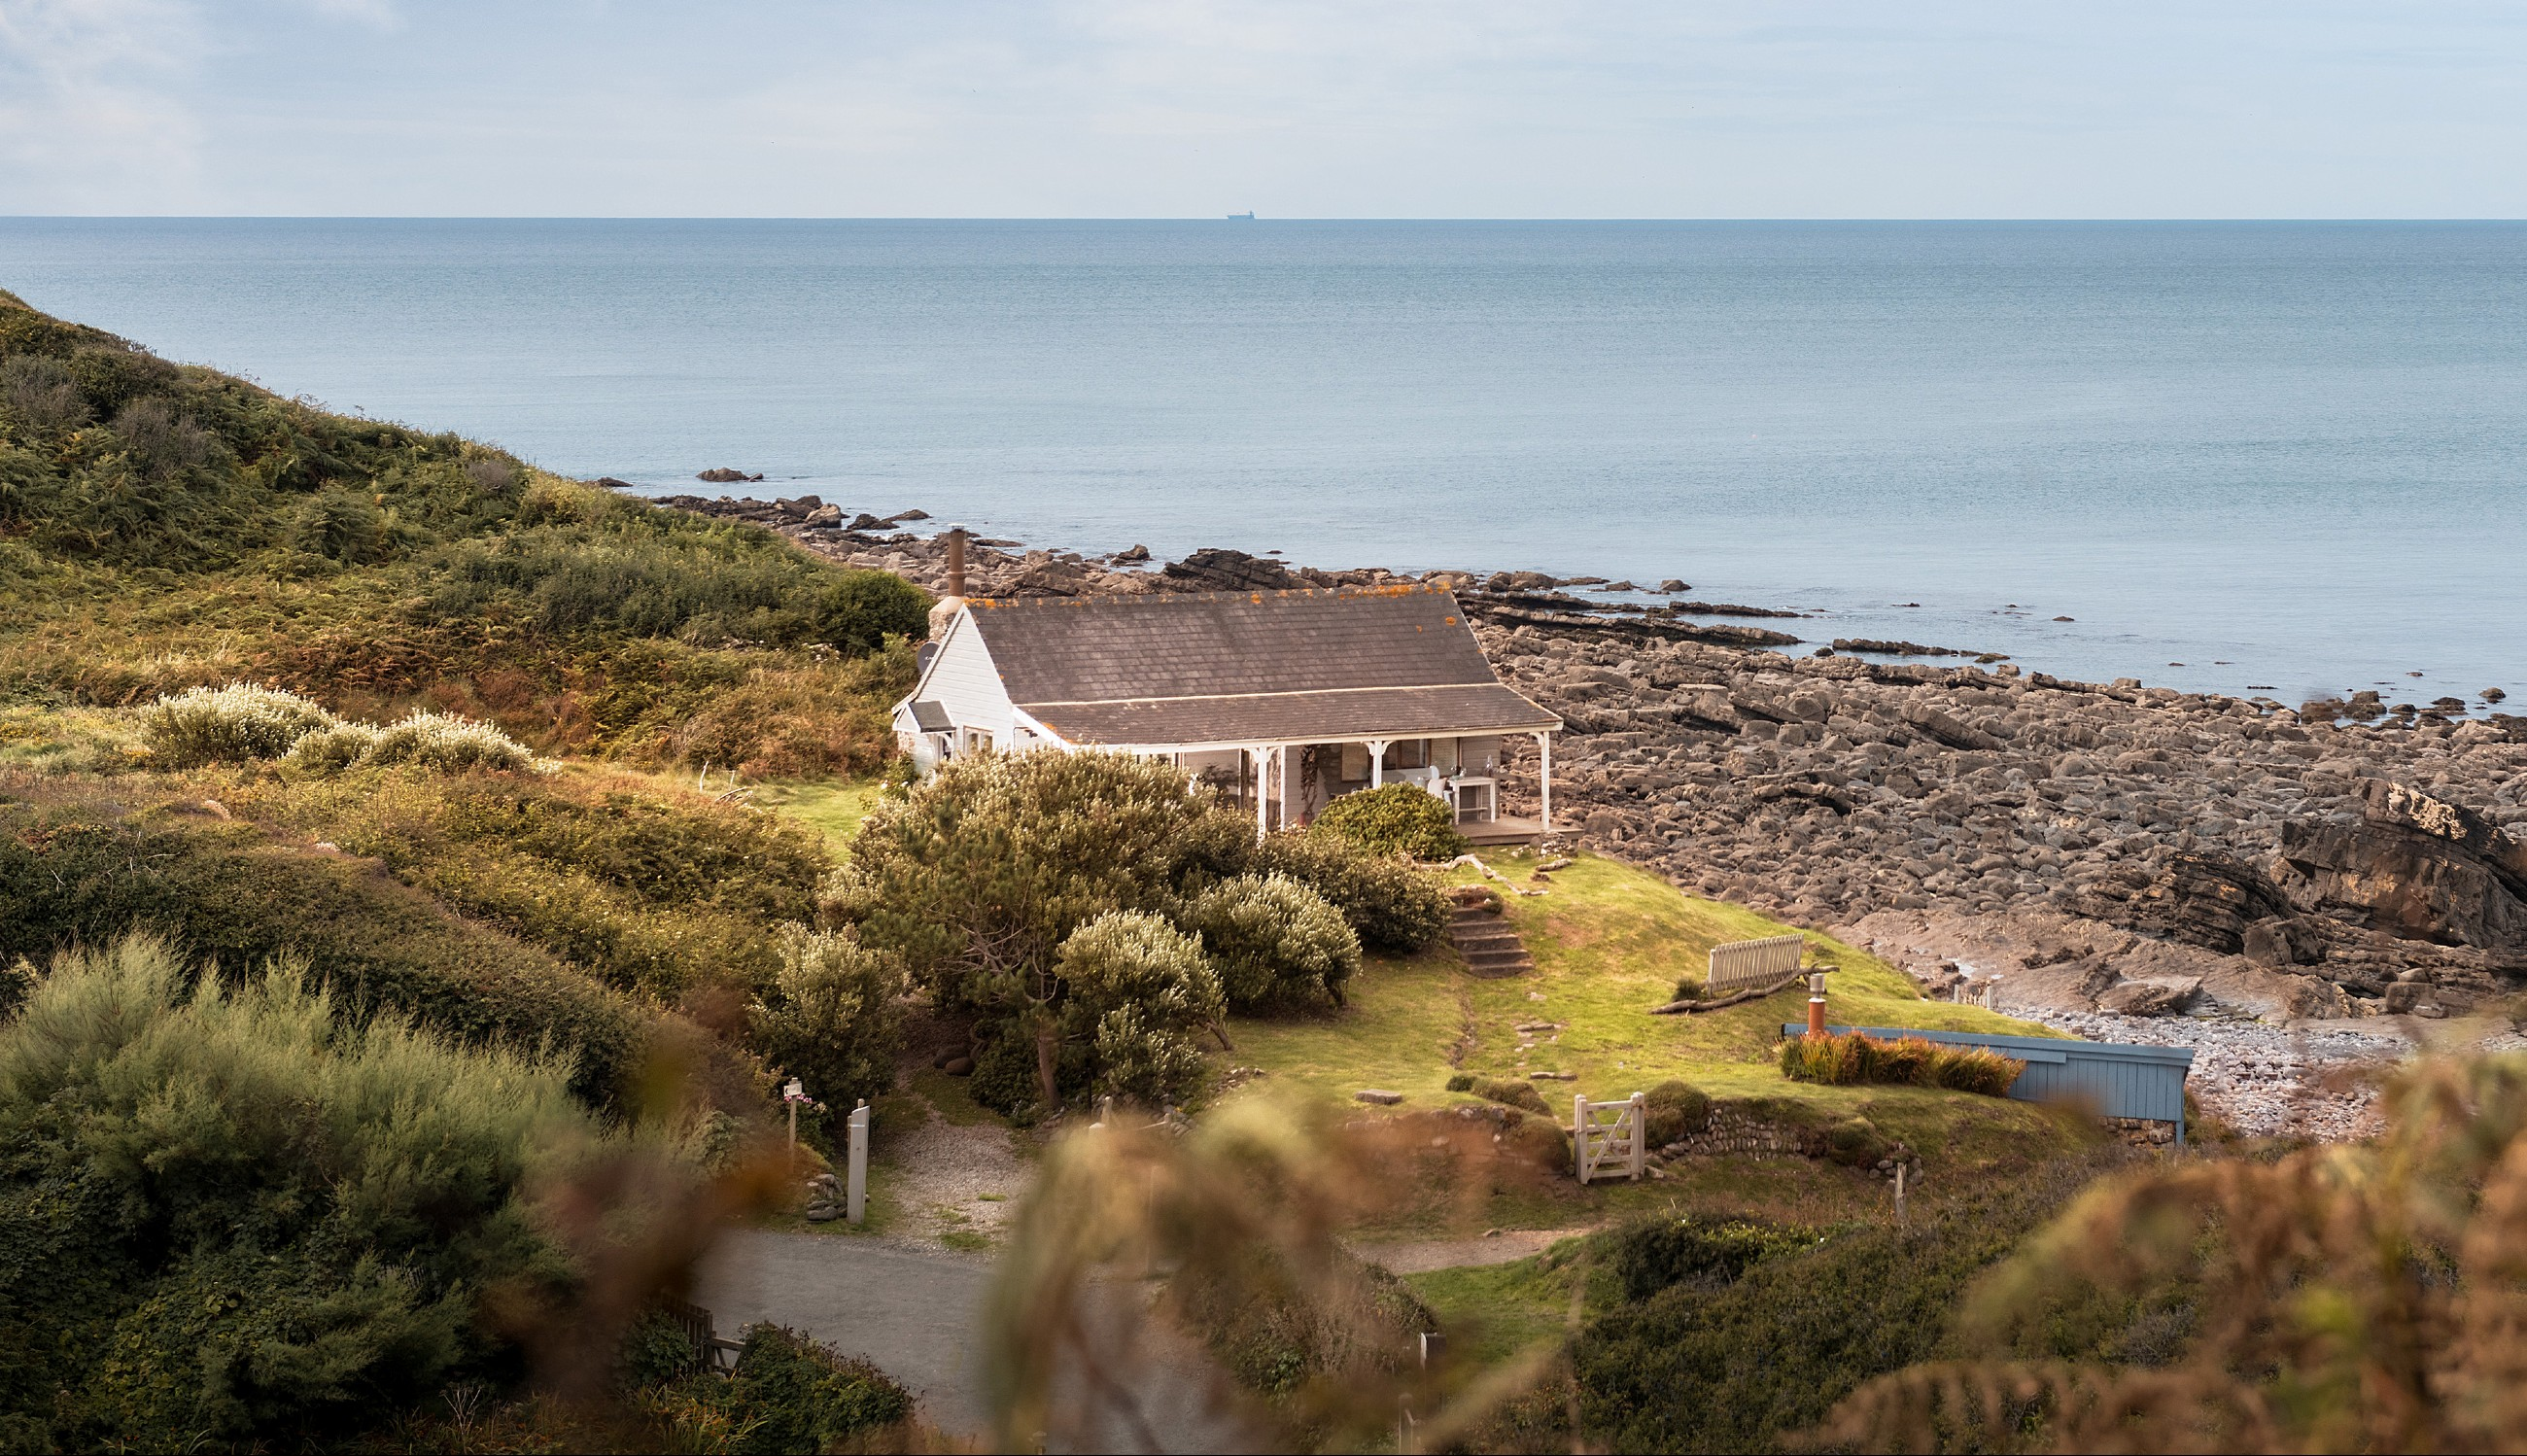 Awe Inspiring The Beach Hut Luxury Self Catering Millook North Cornwall Home Interior And Landscaping Palasignezvosmurscom